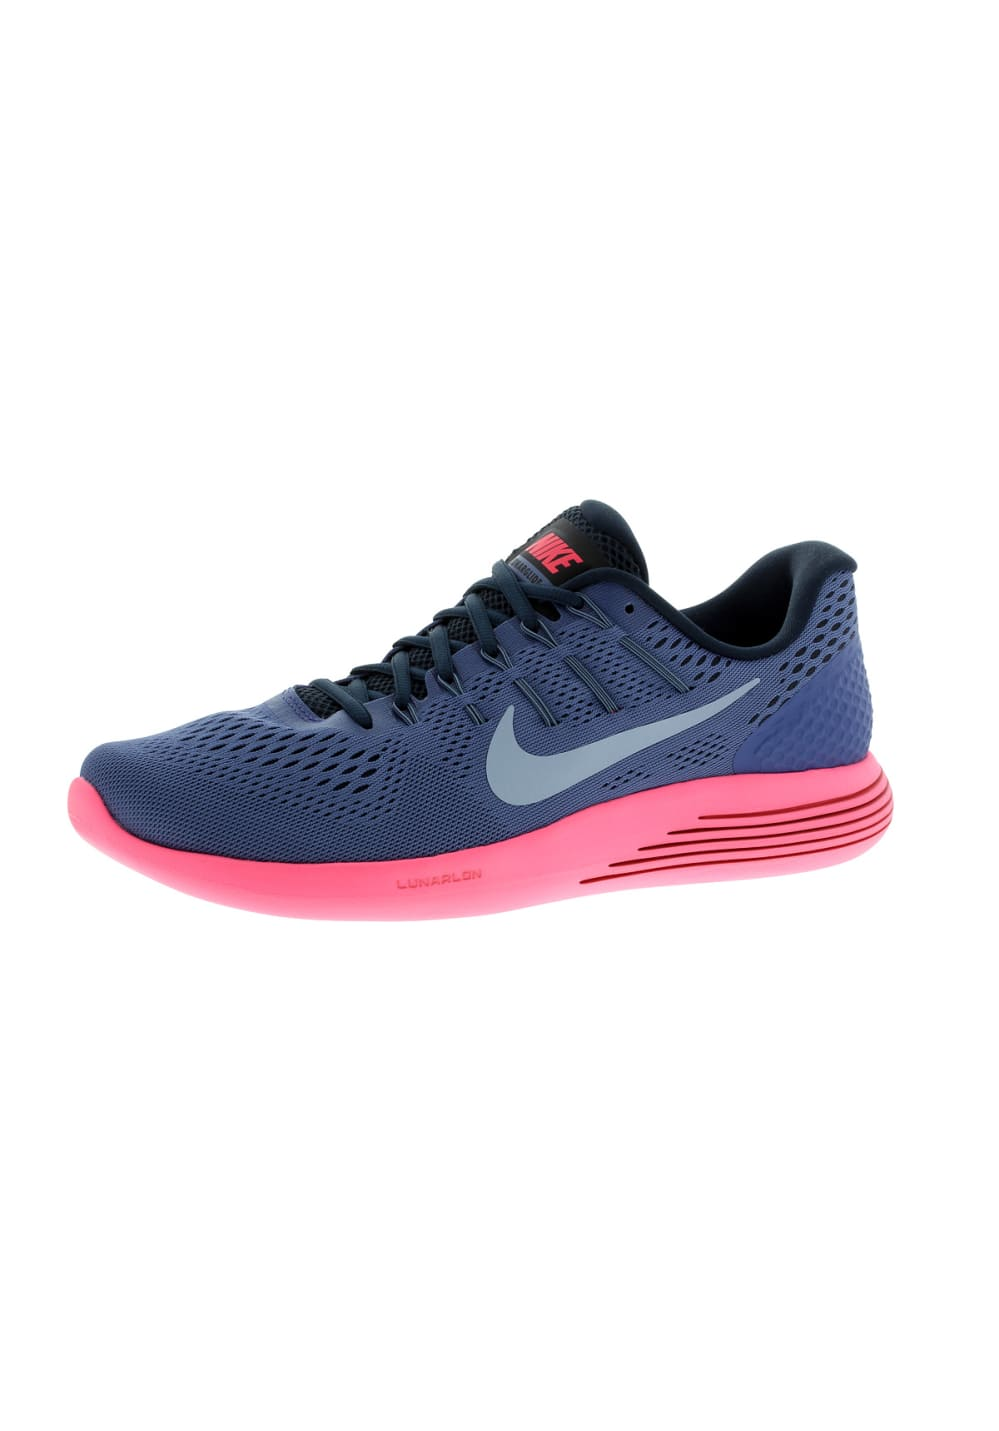 grossiste 89040 d9ad4 Nike Lunarglide 8 - Running shoes for Women - Blue